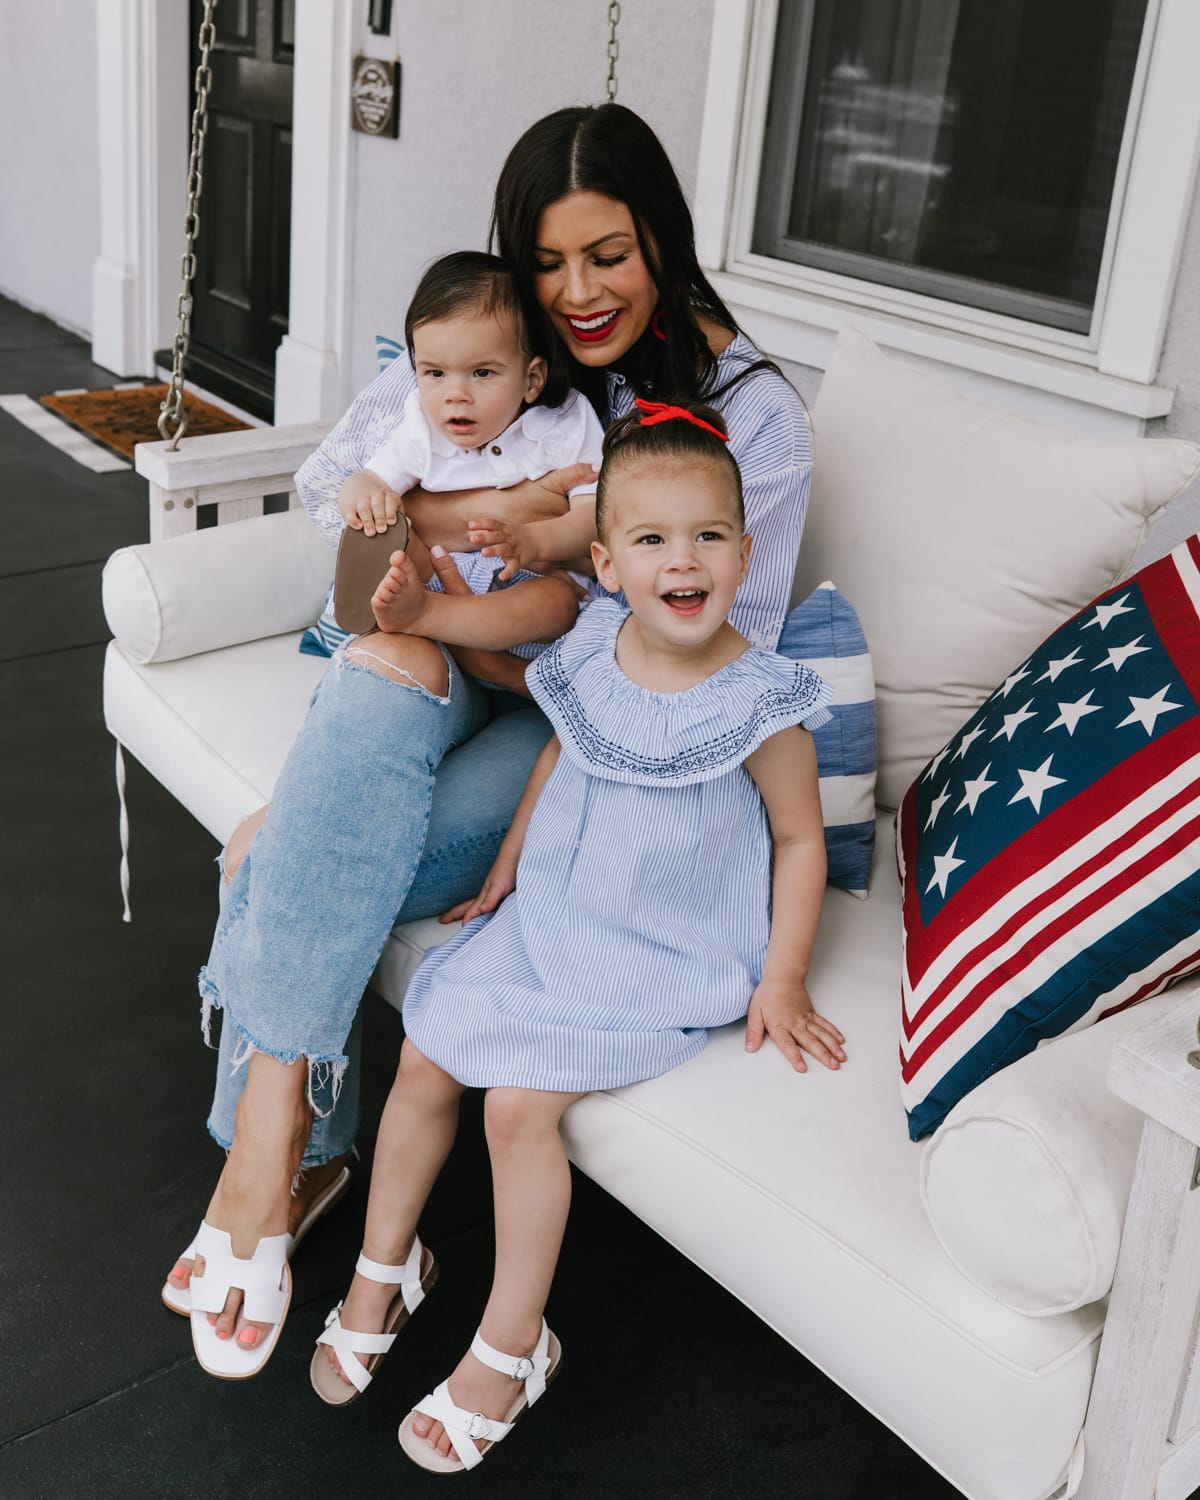 patriotic family outfits